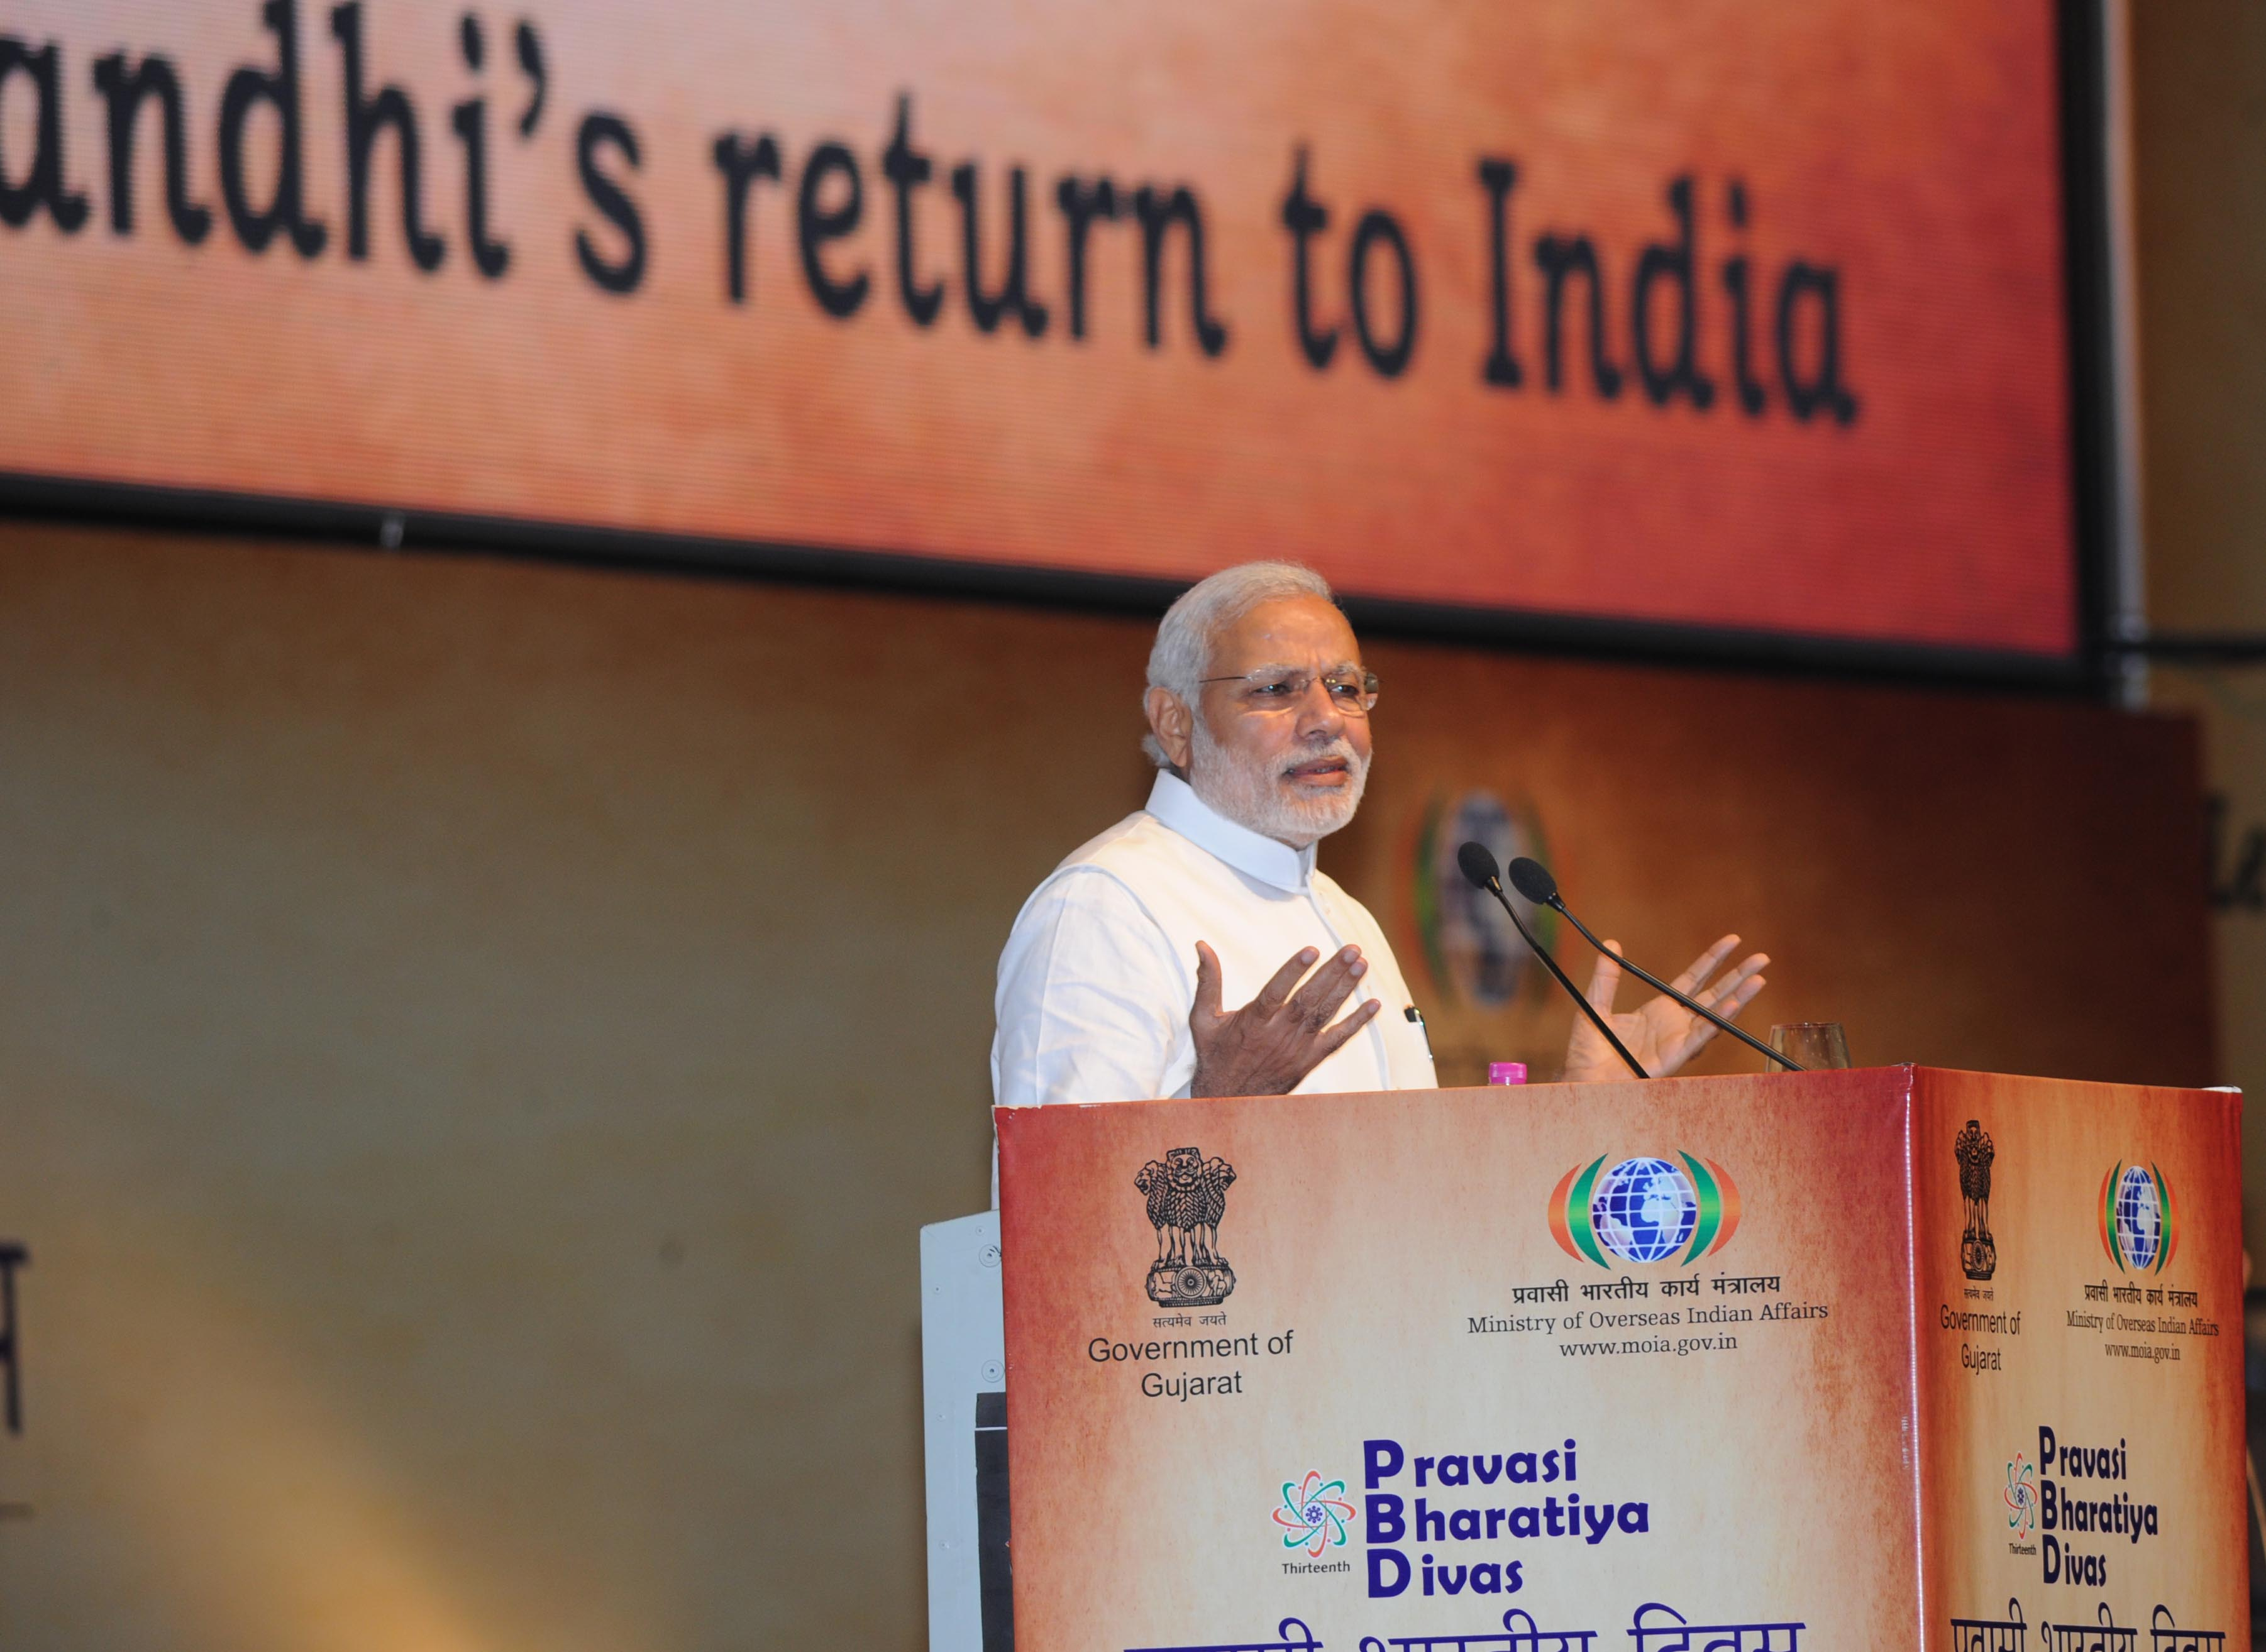 PM addressing audiences at PBD convention